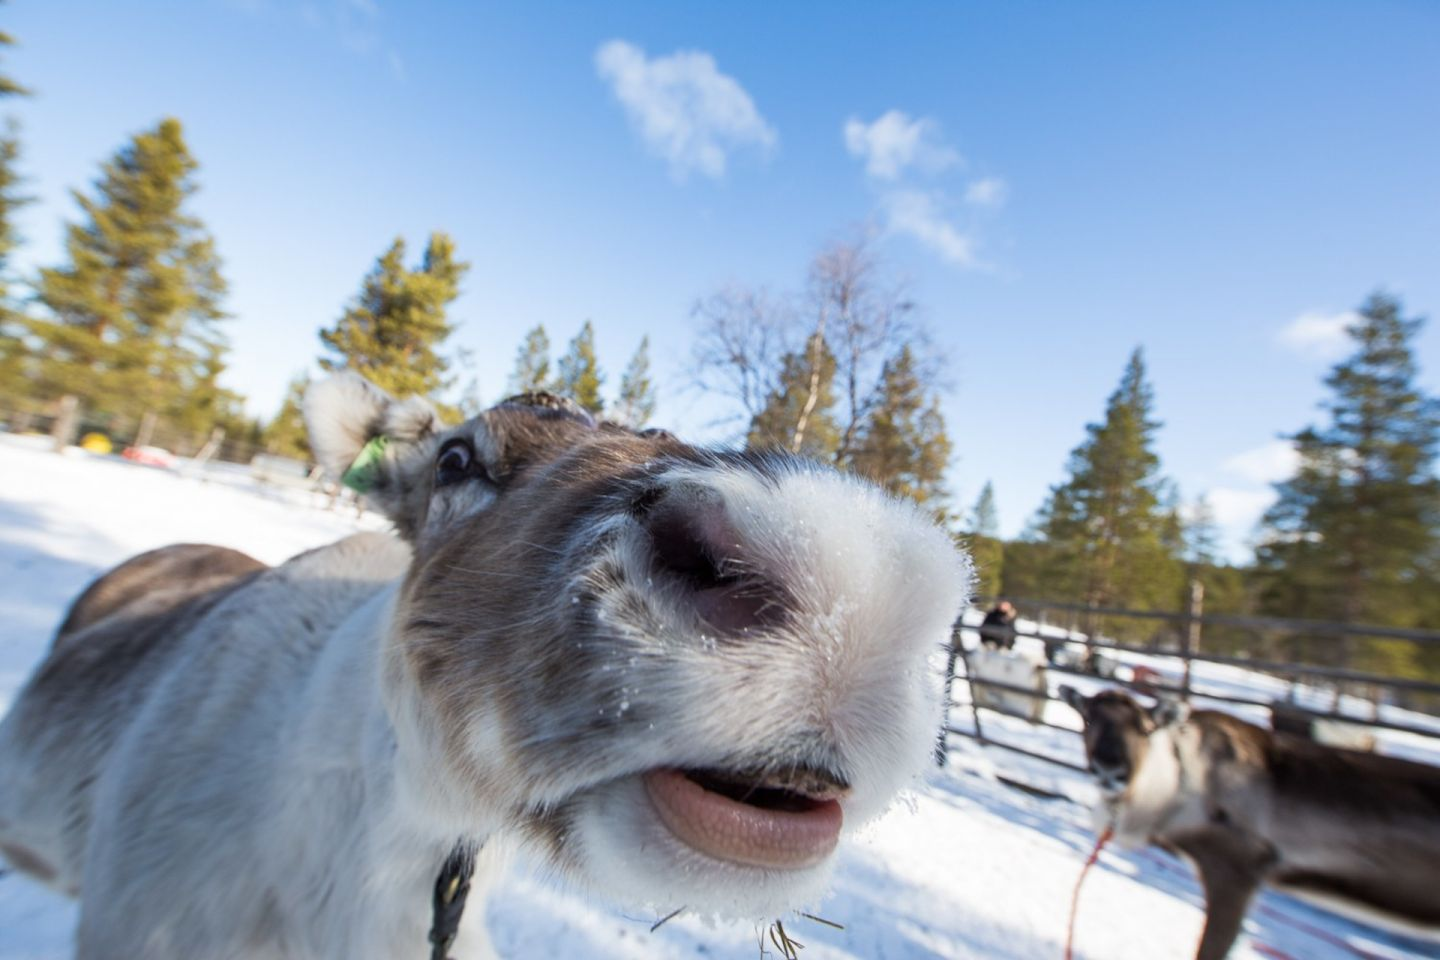 A reindeer close-up from Inari, Finland